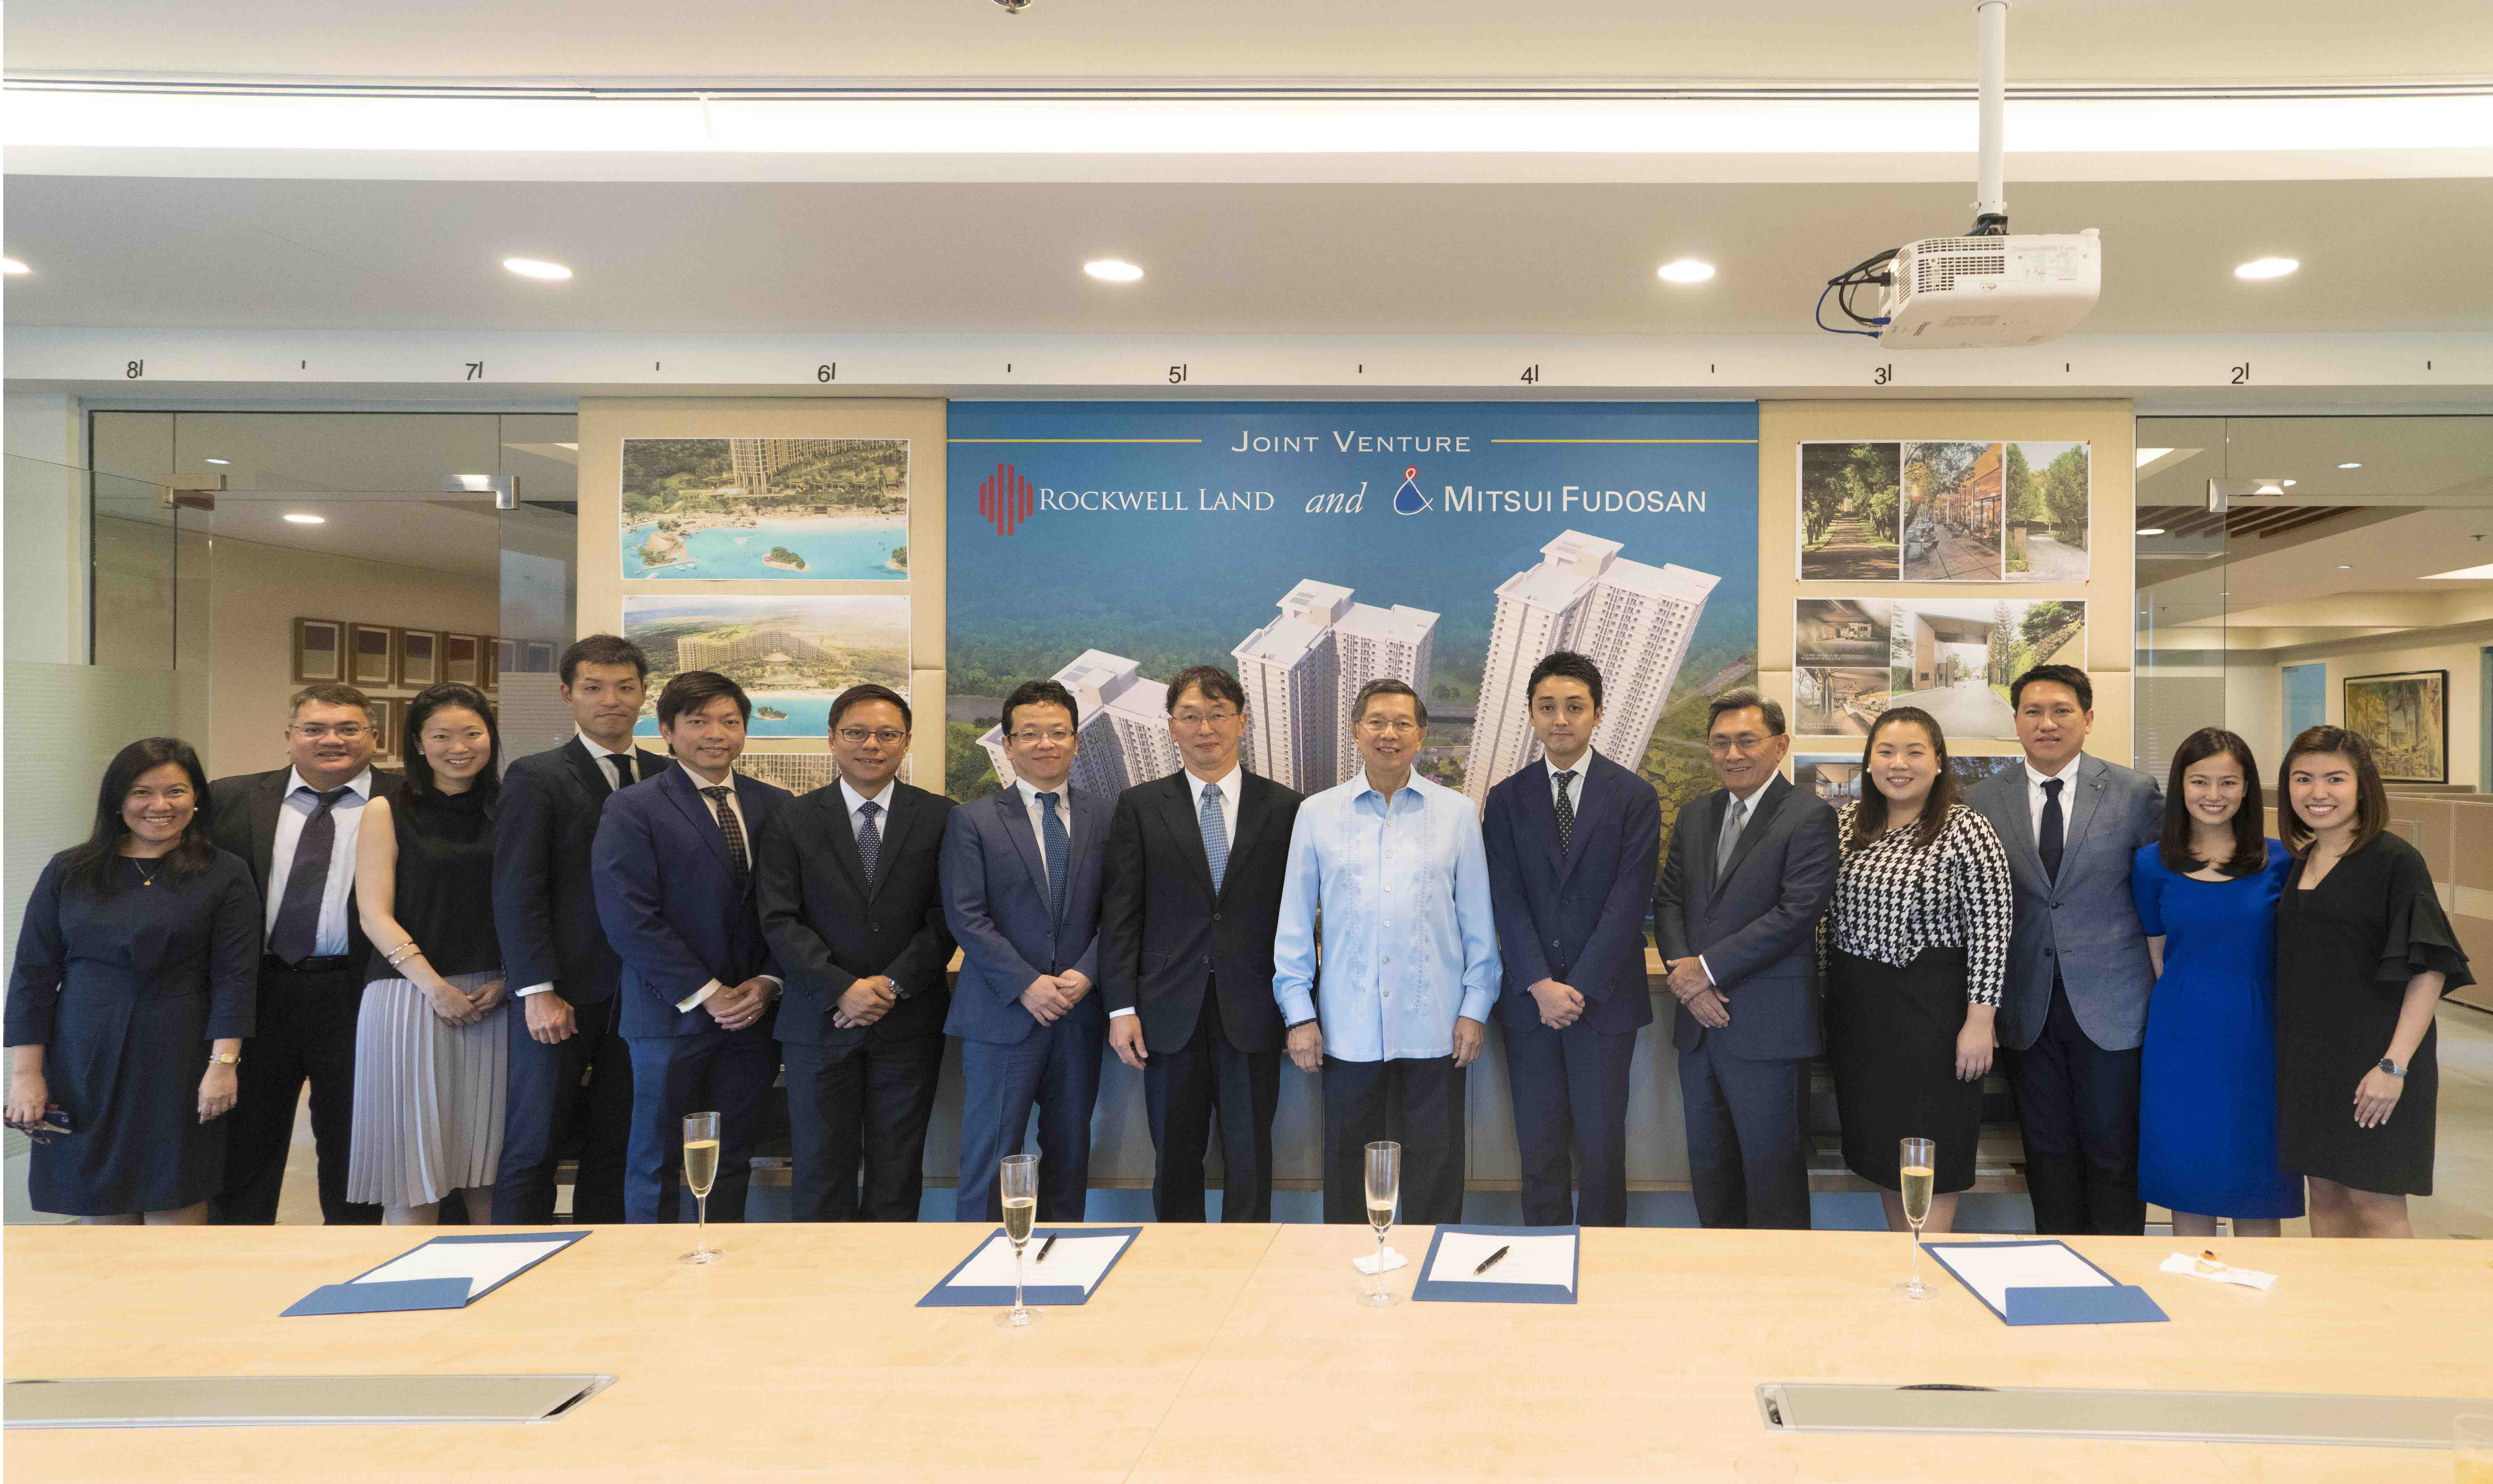 Rockwell, Mitsui Fudosan form partnership for new development